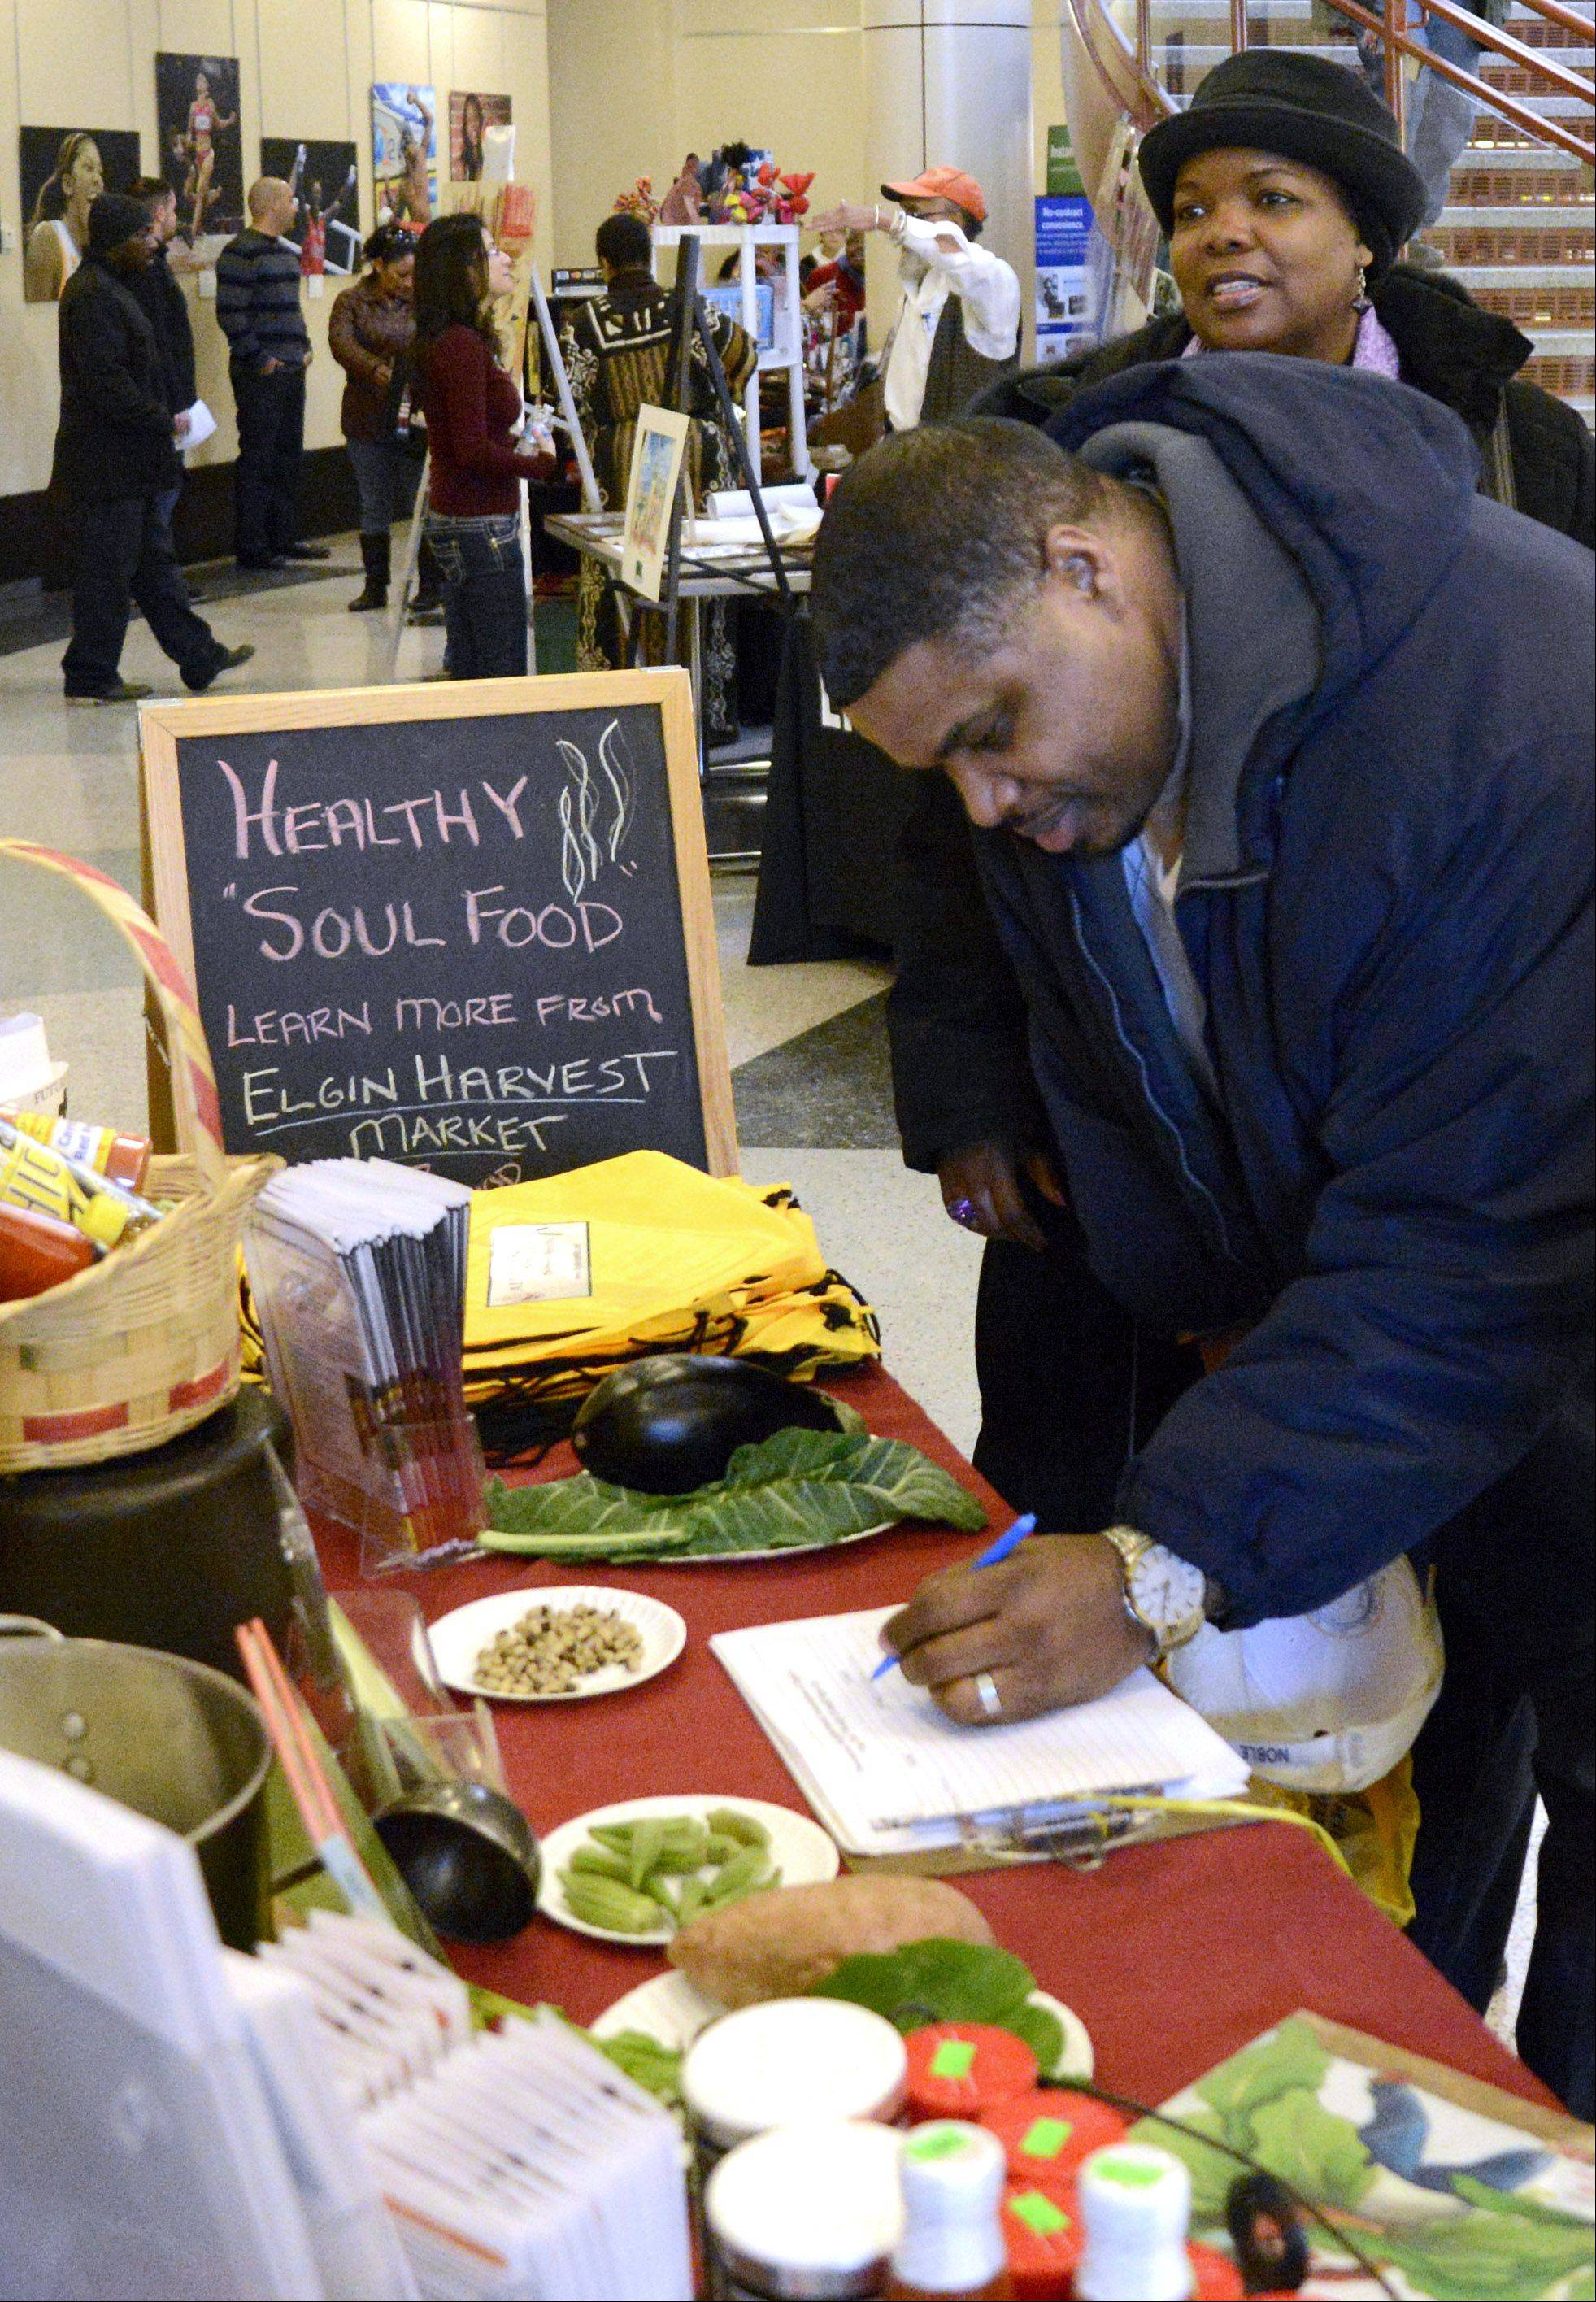 Elgin Police Sgt. Gary Neal and his wife, Marilyn, of Huntley sign up to win a basket full of goodies at the Elgin Harvest Market's 'healthy soul food' table on Saturday at the eighth annual Black History Family Festival at Gail Borden Public Library in Elgin.